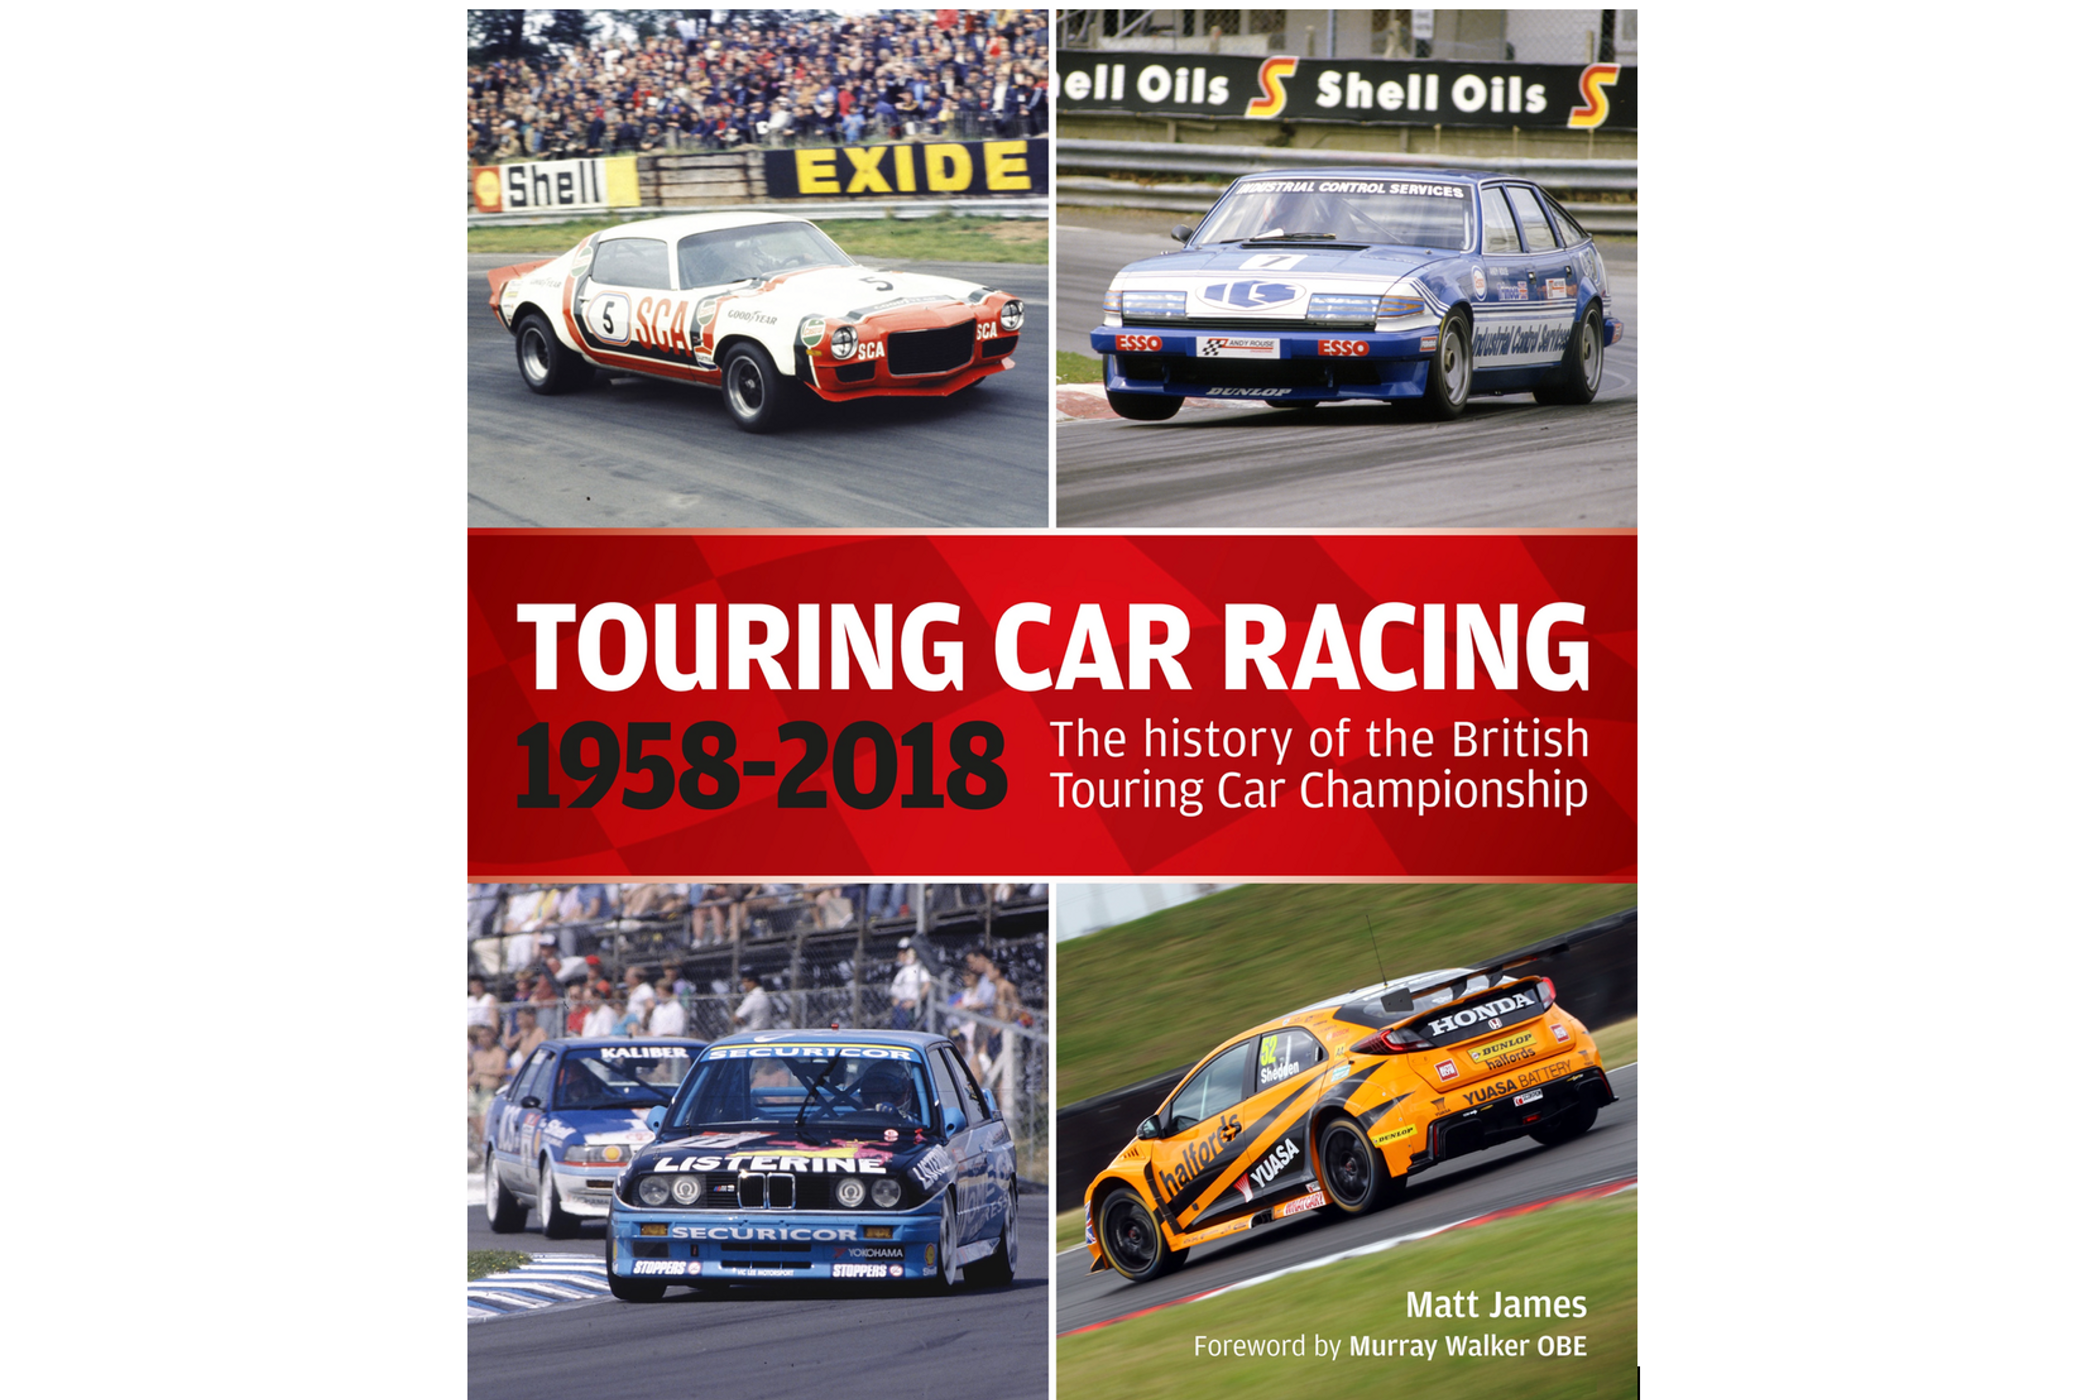 Touring Car Championship 1958 2018 Marks Sixty Years Of The BTCC A Series That Has Seen Some Memorable Racing With Iconic Cars And Famous Drivers